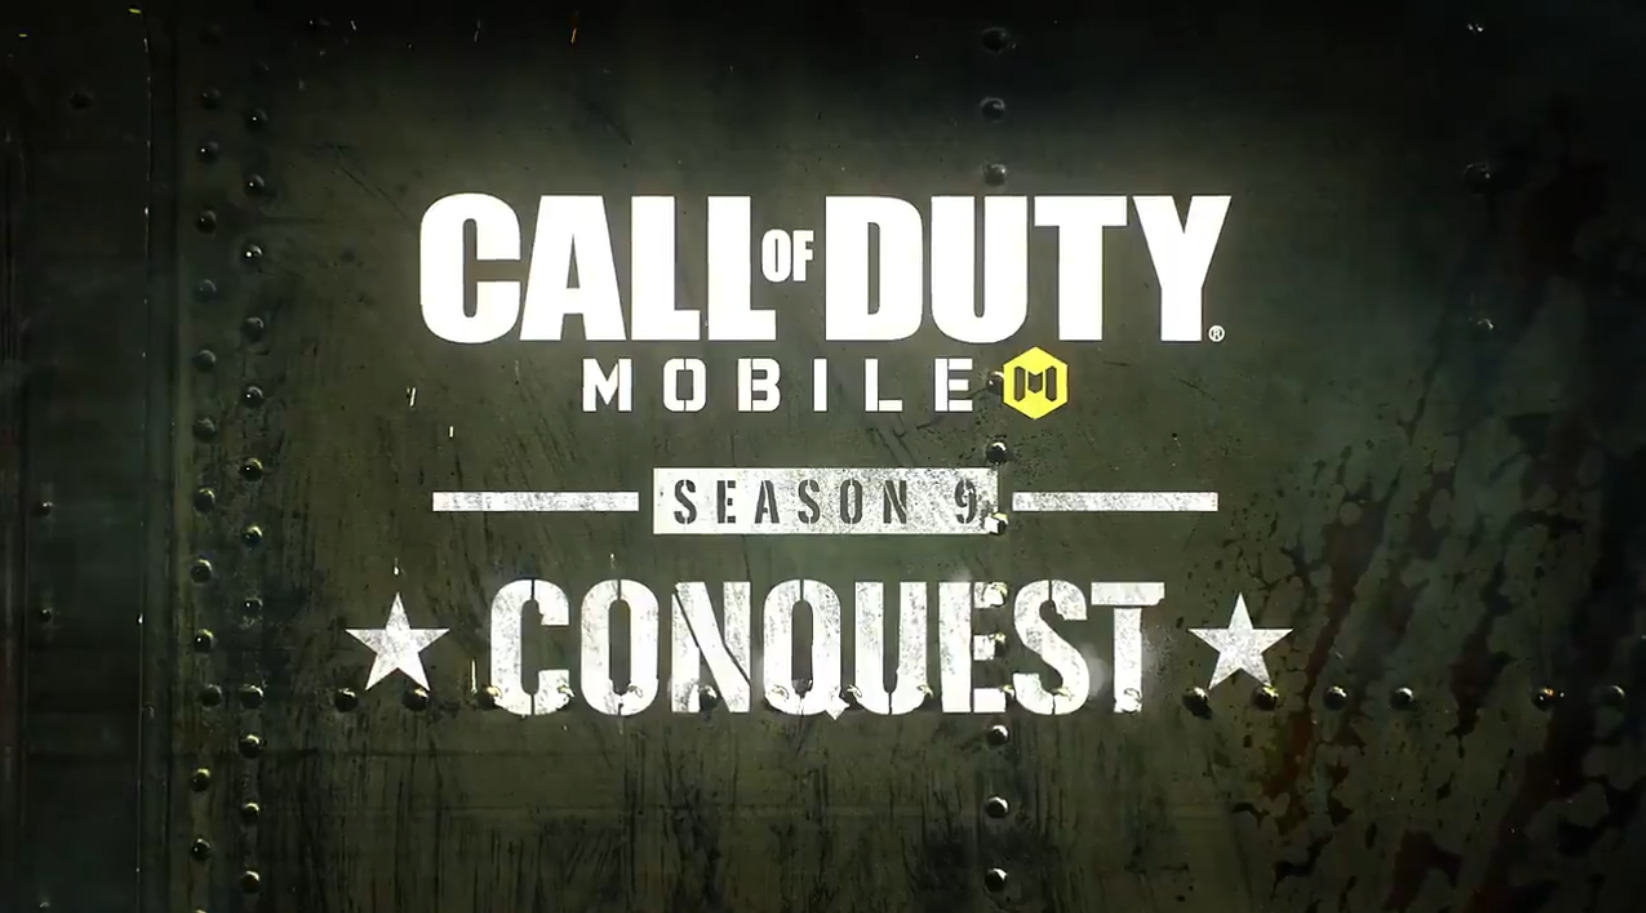 call of duty mobile season 9 update